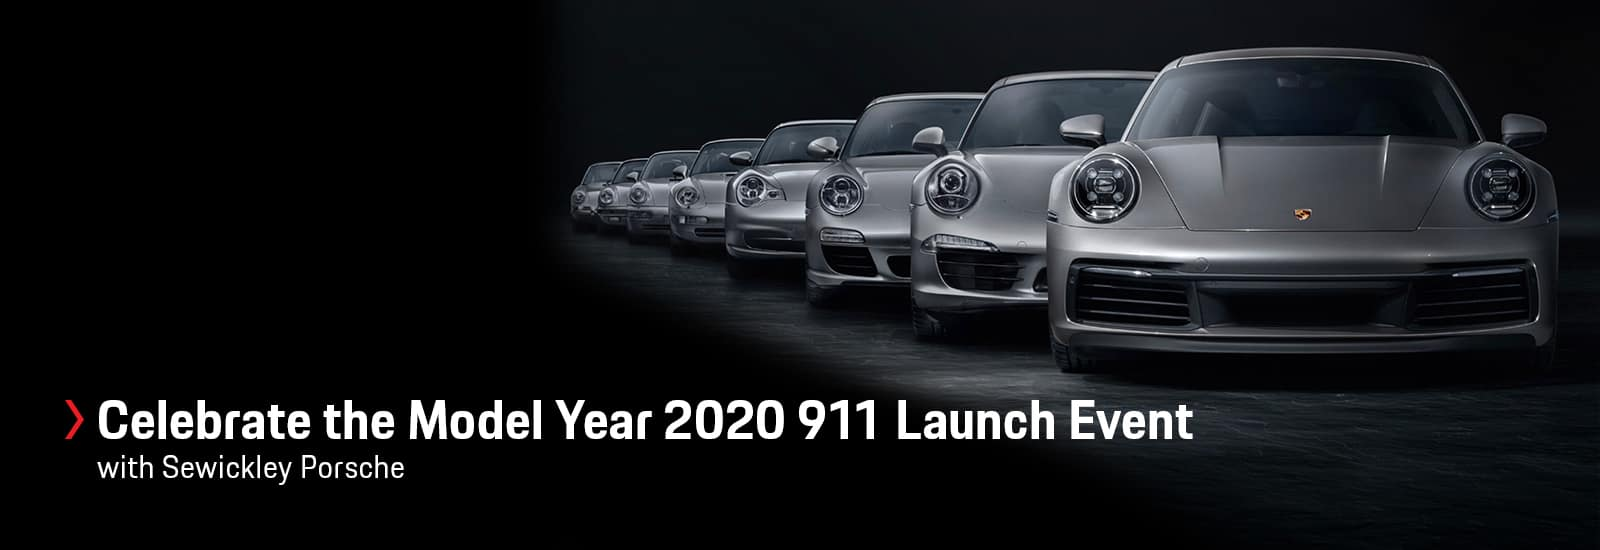 Celebrate at the Model Year 2020 911 Lauch Event with Sewickley Porsche